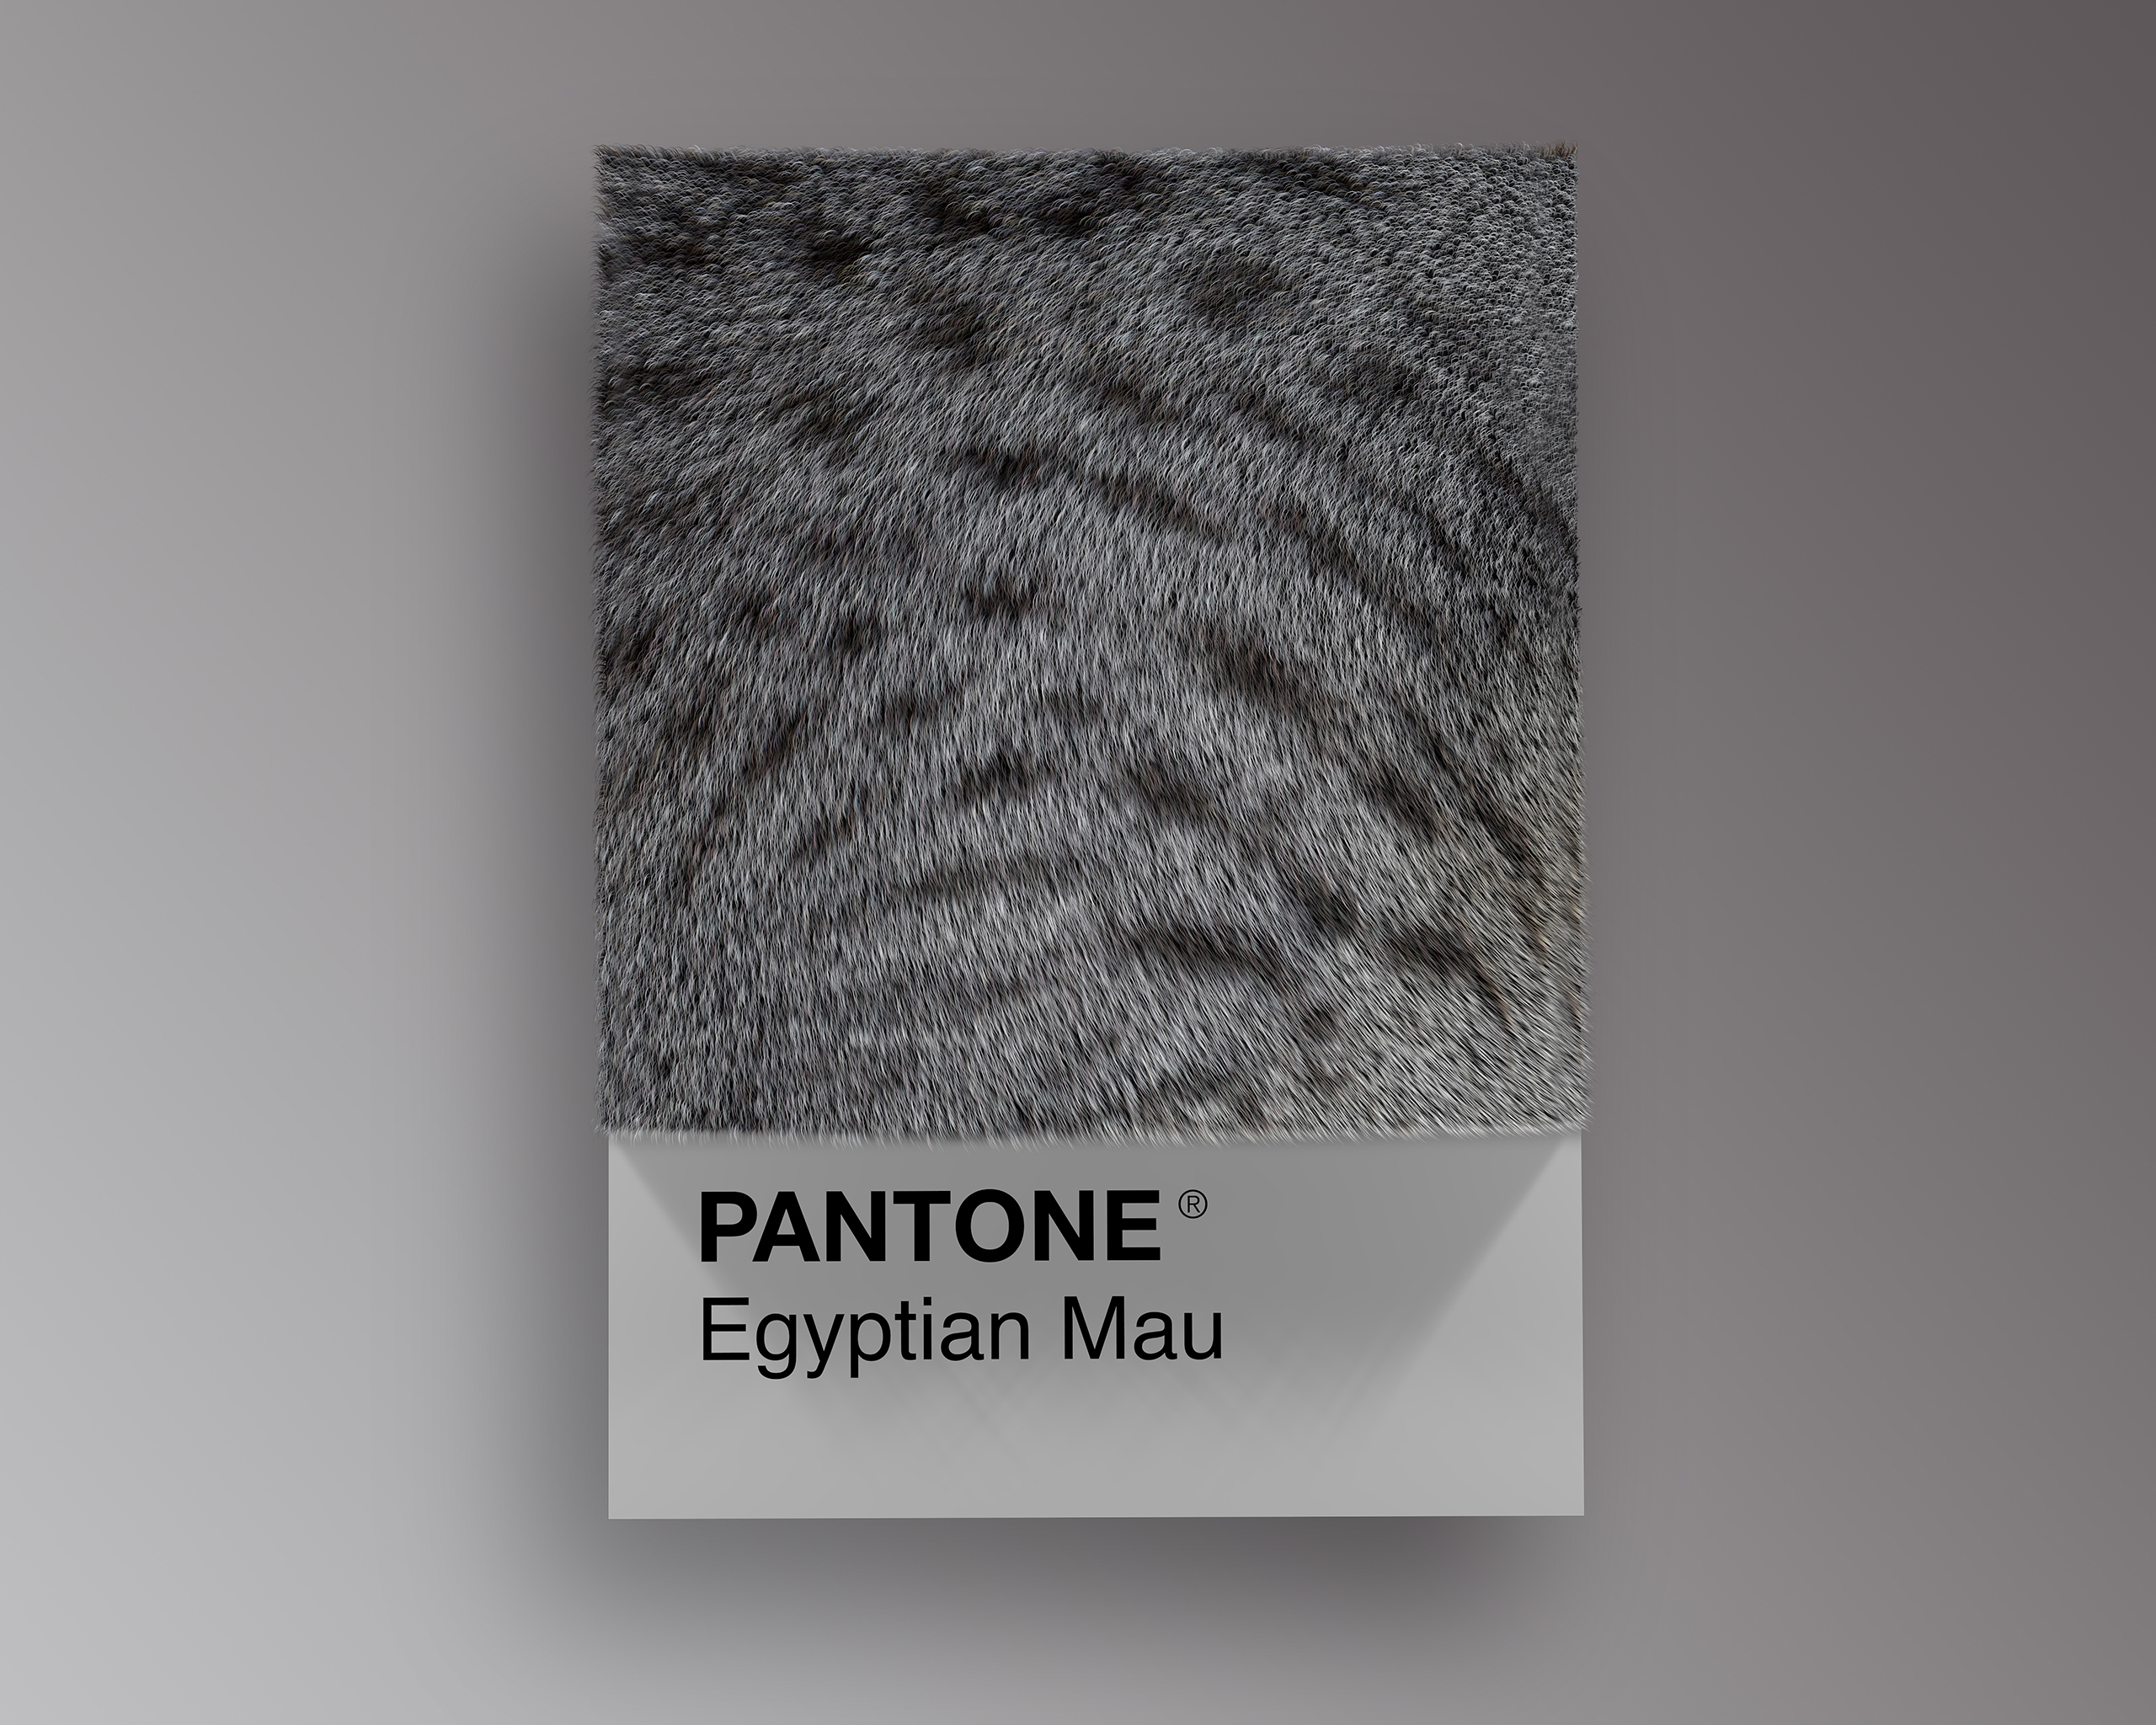 Egyptian Mau as Pantone